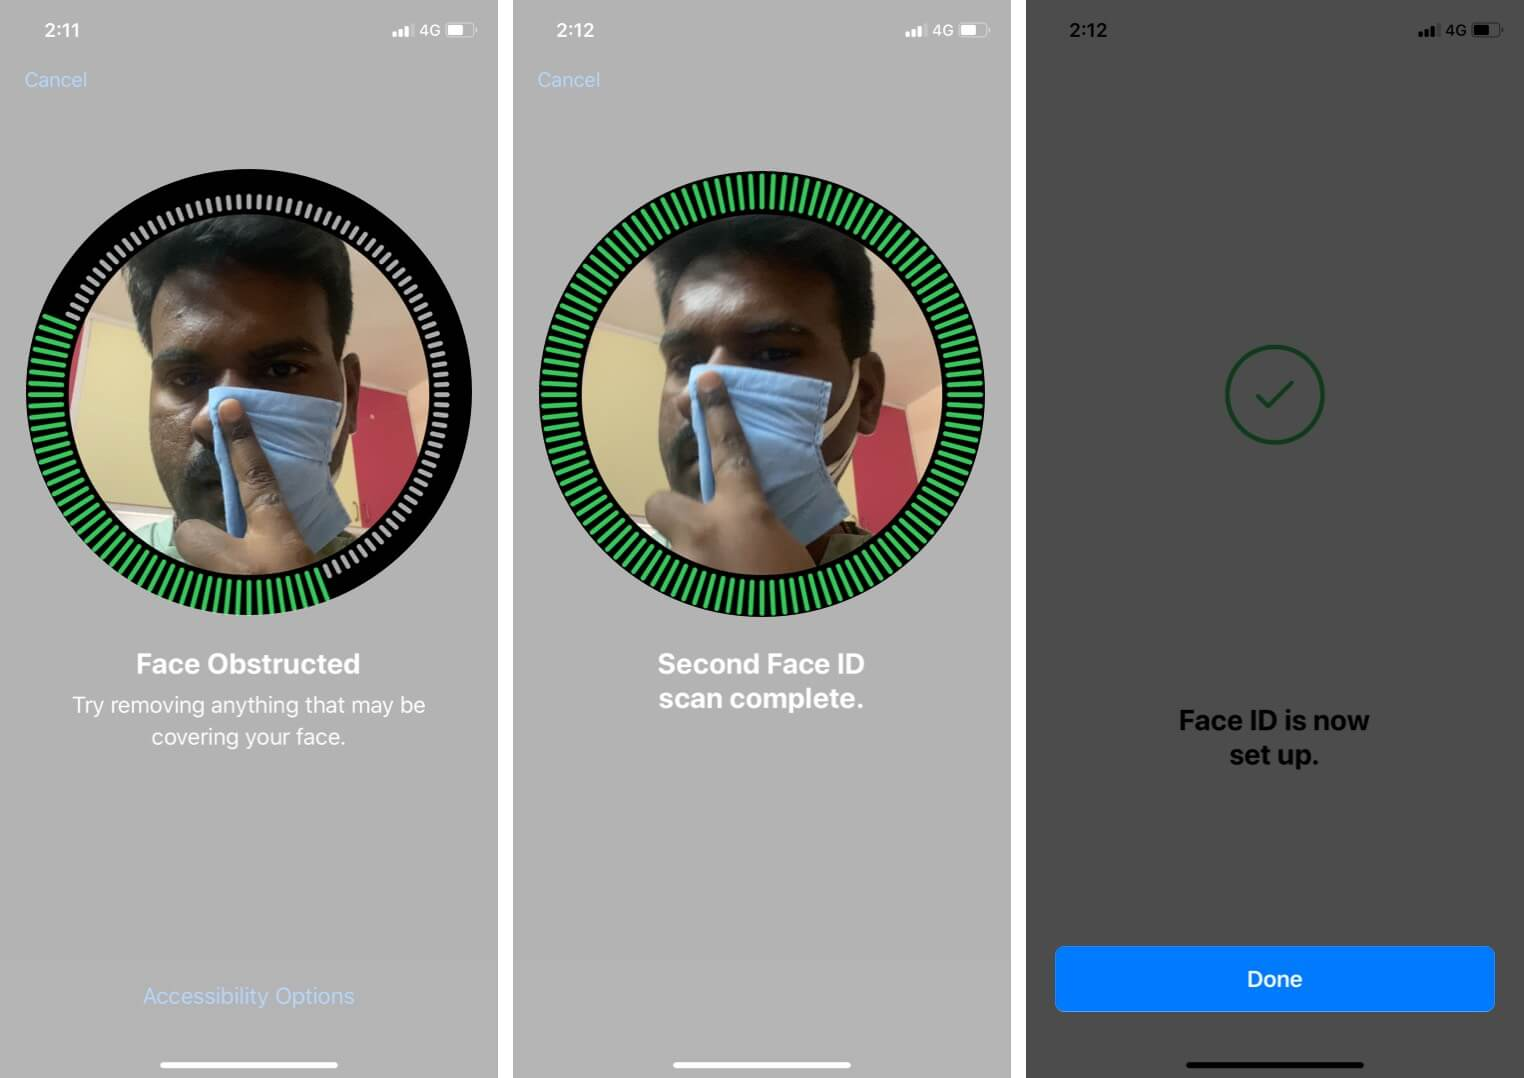 Tap on Done to Set up iPhone Face ID with Mask